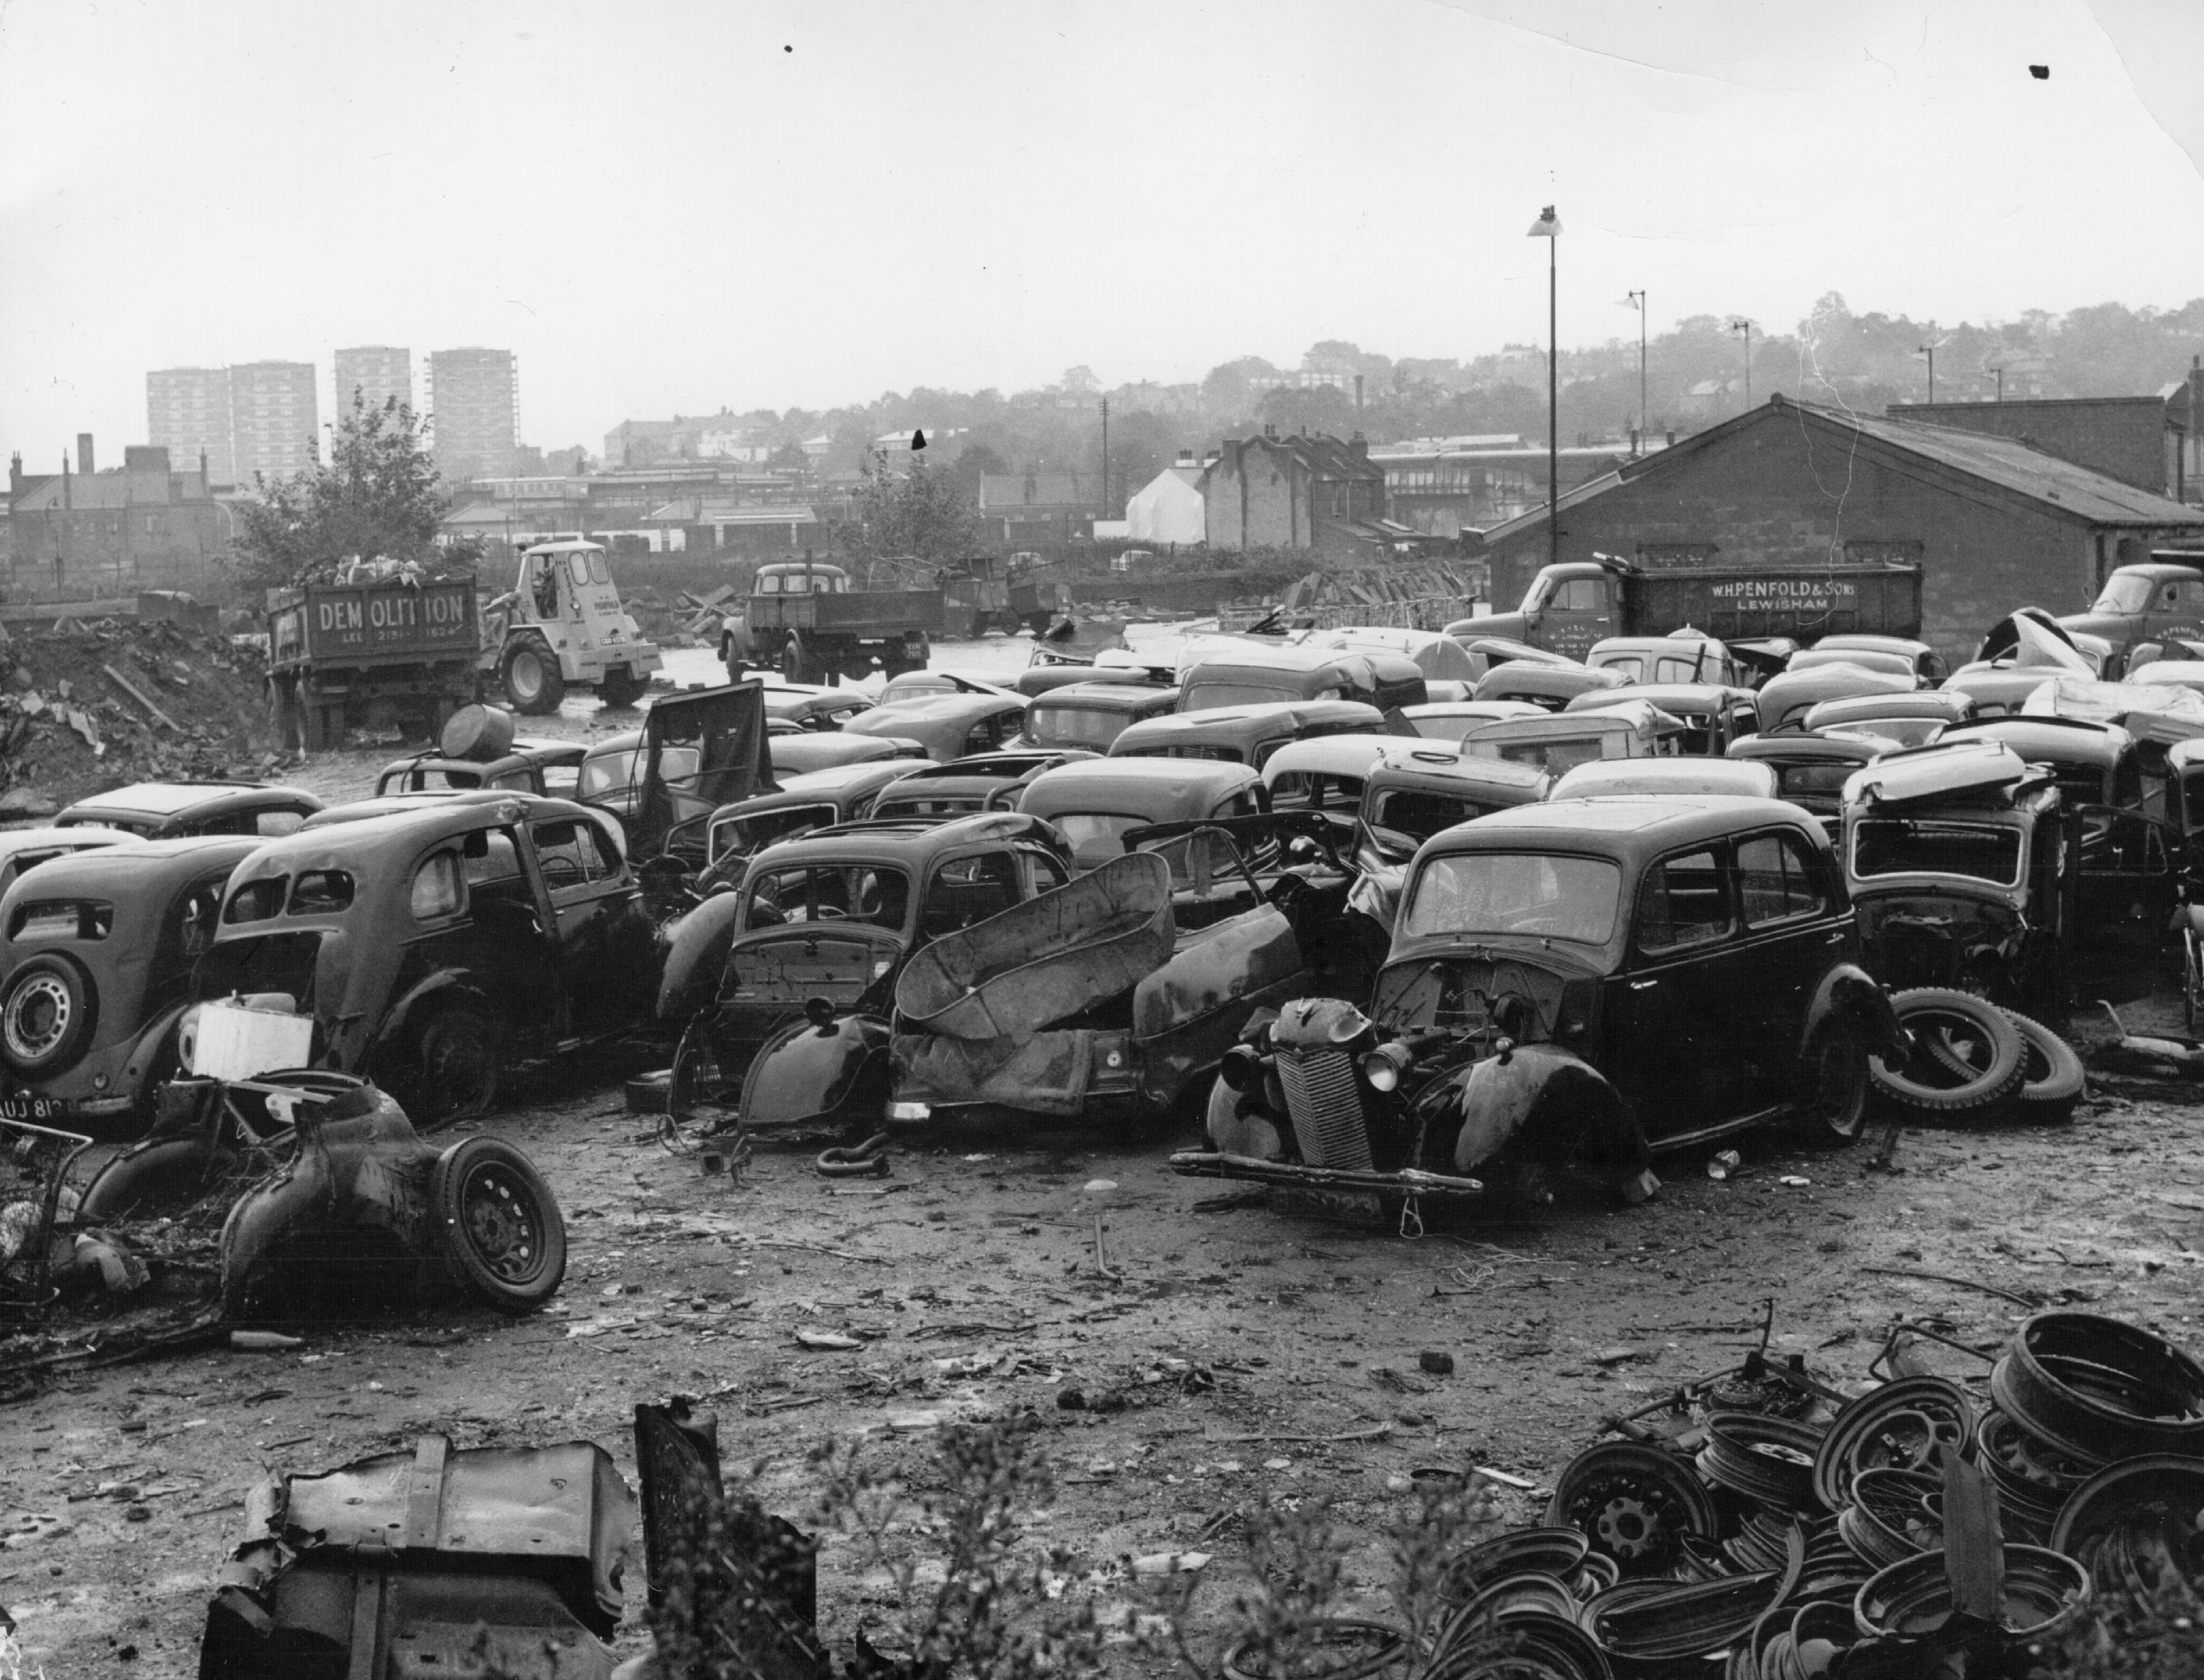 A junkyard filled with scrapped cars, a metaphor for what could happen to consumer protections if Dodd-Frank is repealed